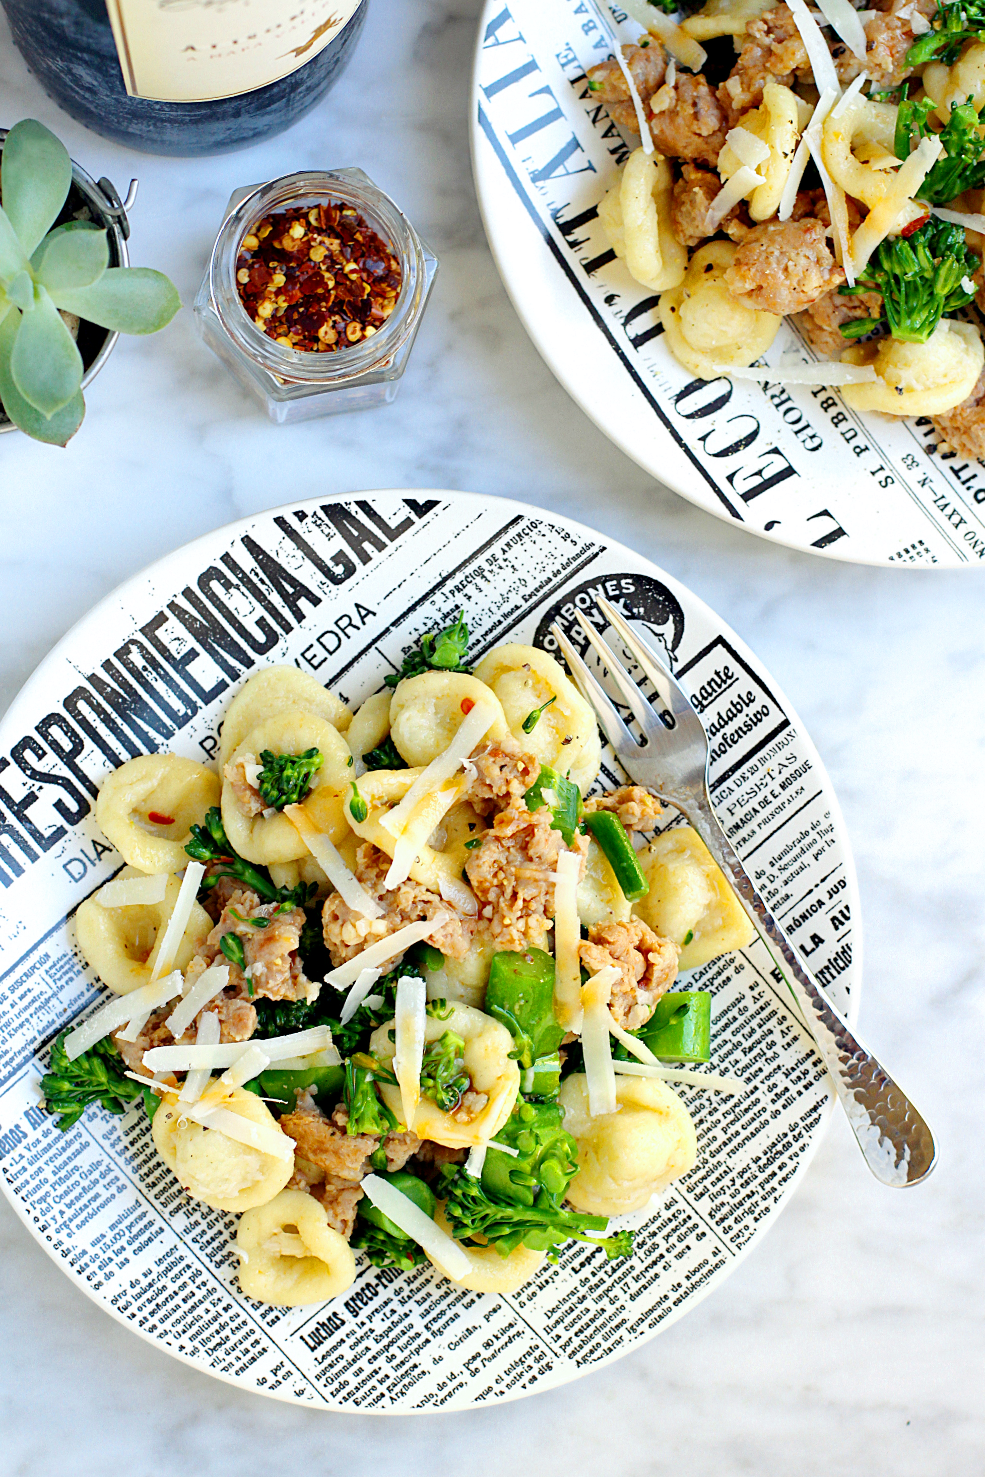 Image of homemade orecchiette with sausage and broccolini from the top.